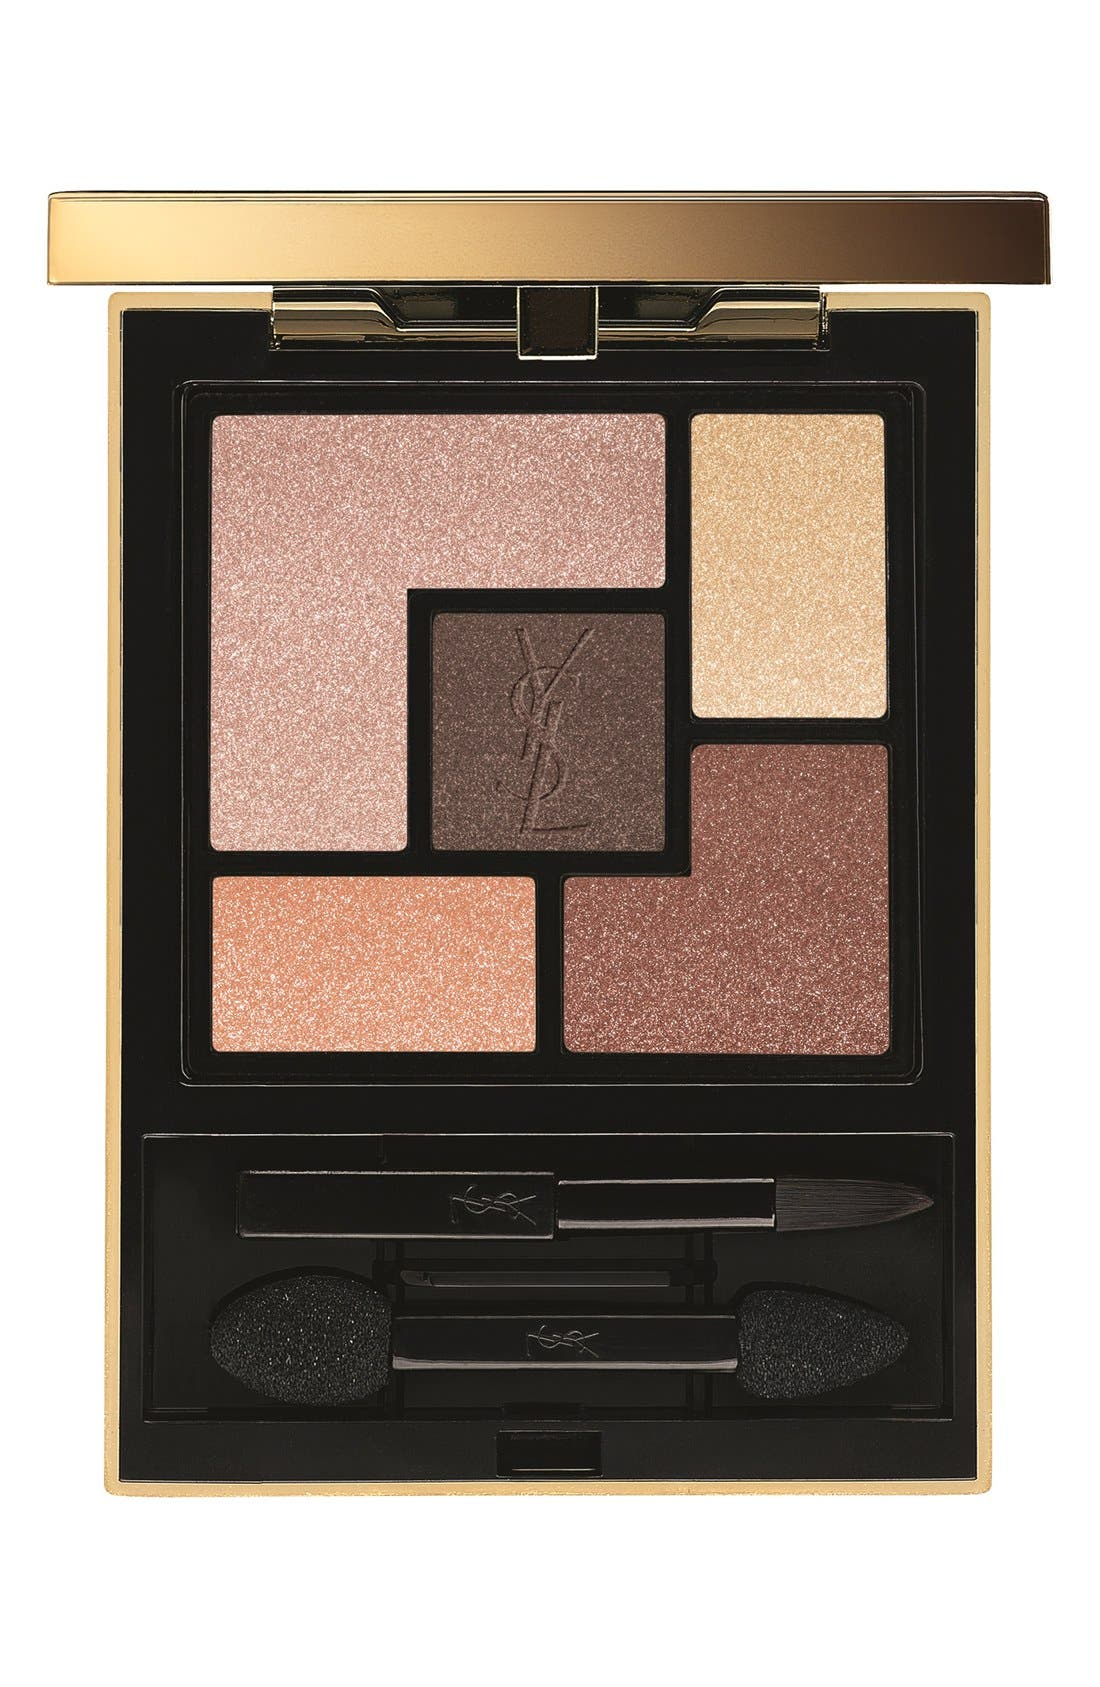 Yves Saint Laurent '5 Color' Couture Palette